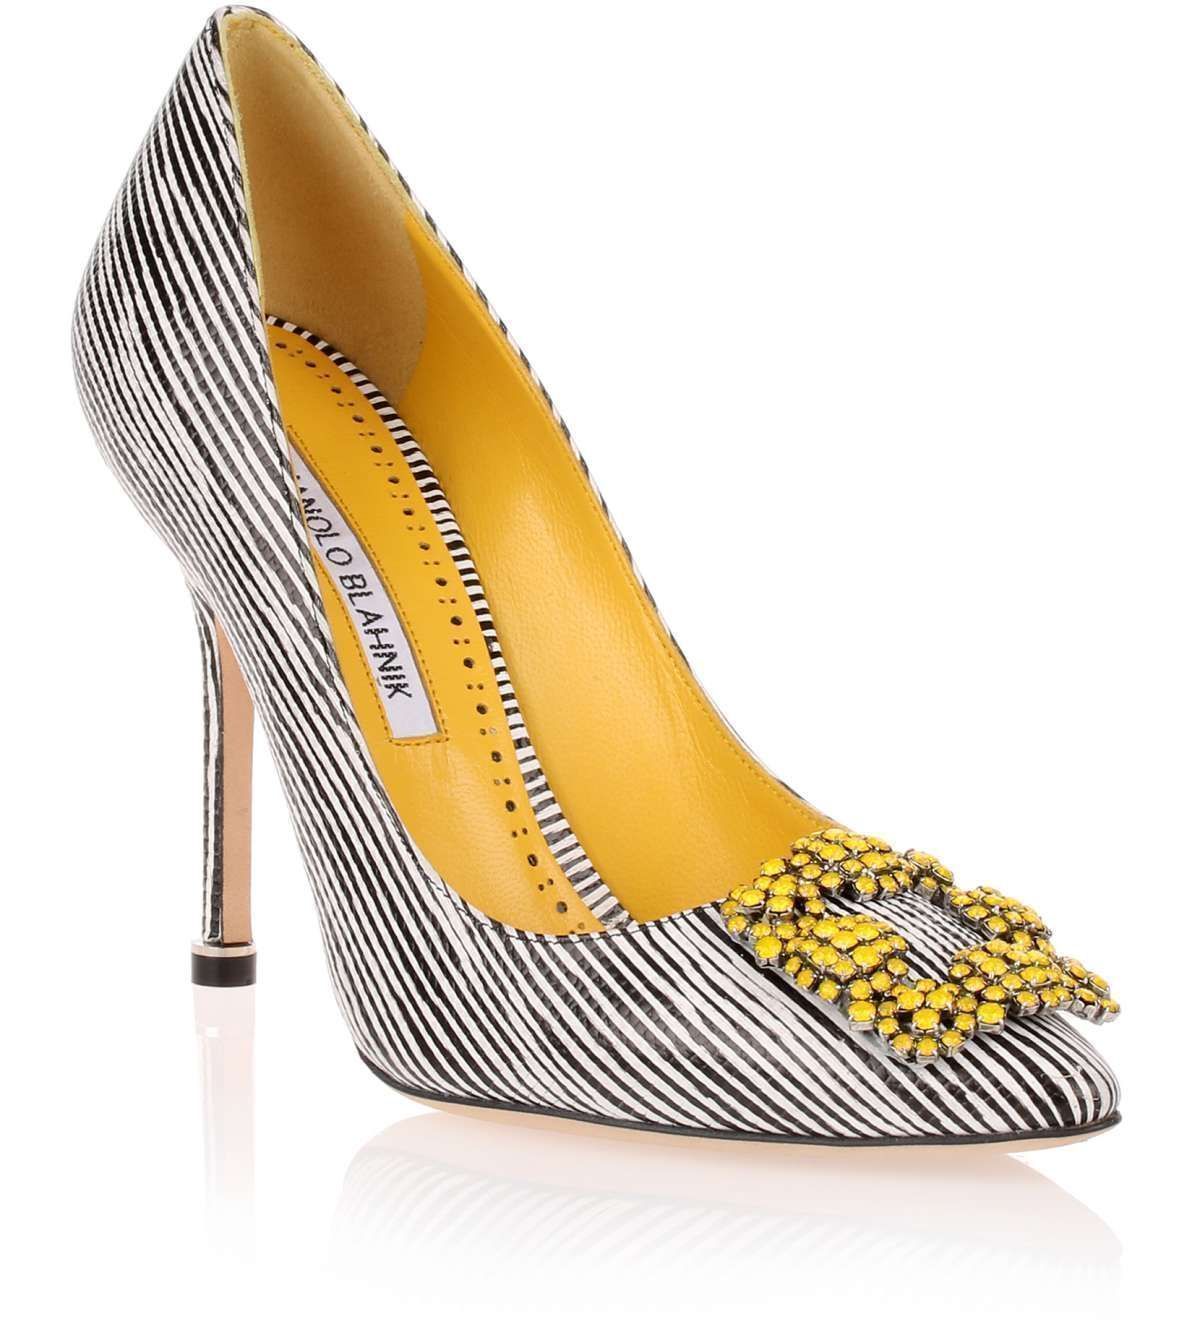 Black and white striped embossed leather pump with a yellow crystal  embellished ornament from Manolo Blahnik. The Hangisi pump has a slightly  pointed toe, ...